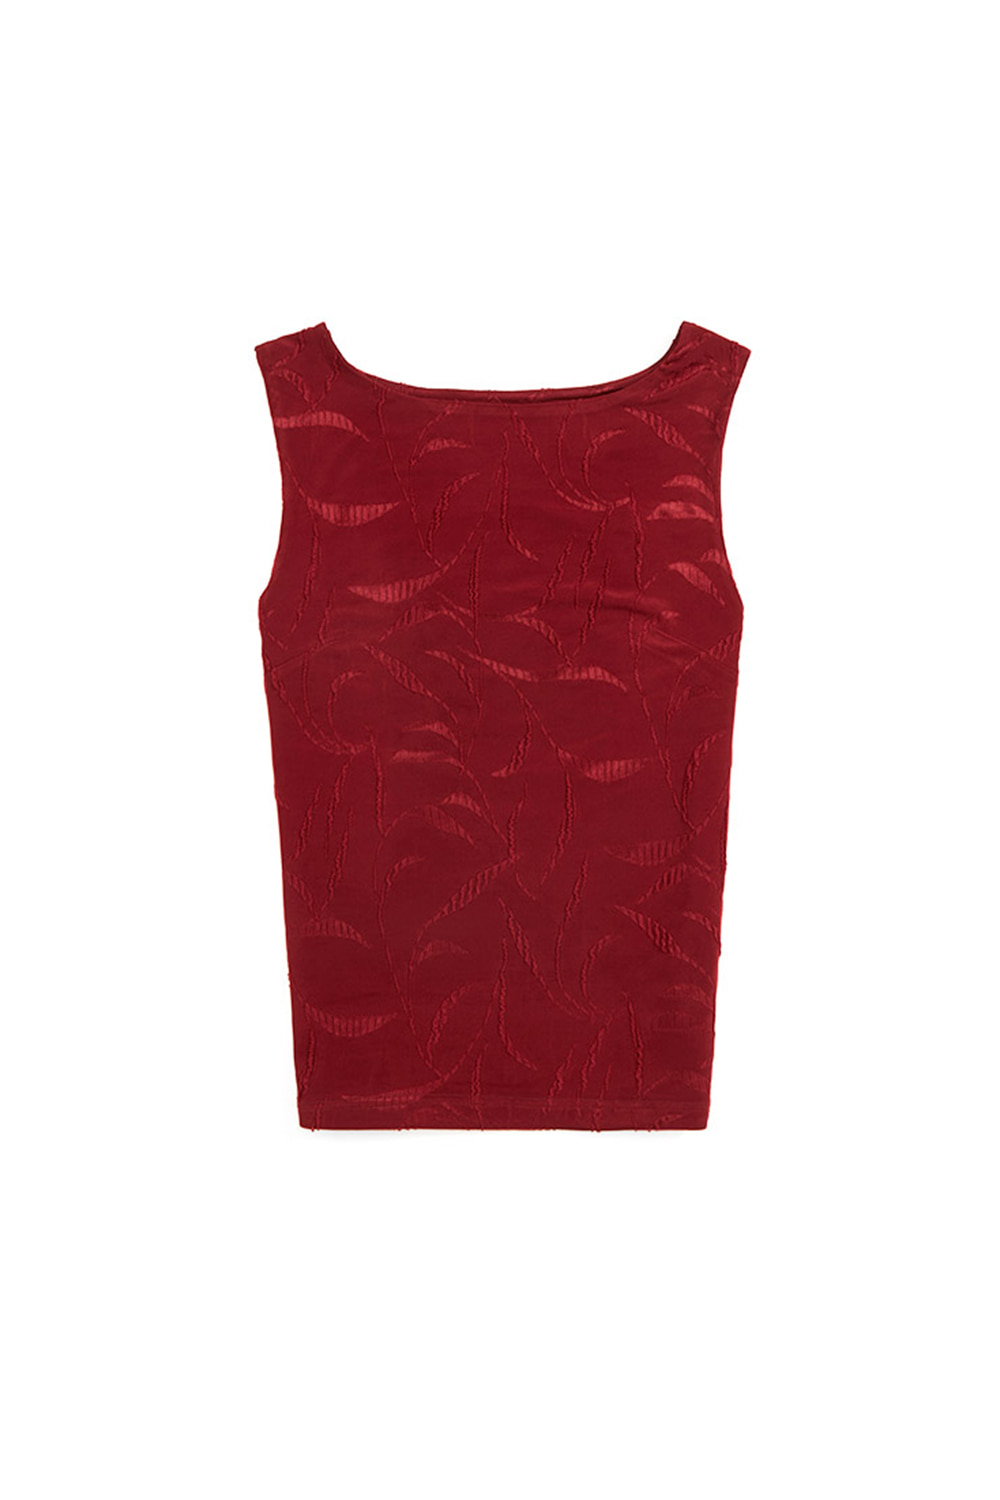 BOAT NECK SLEEVELESS TOP_red rose